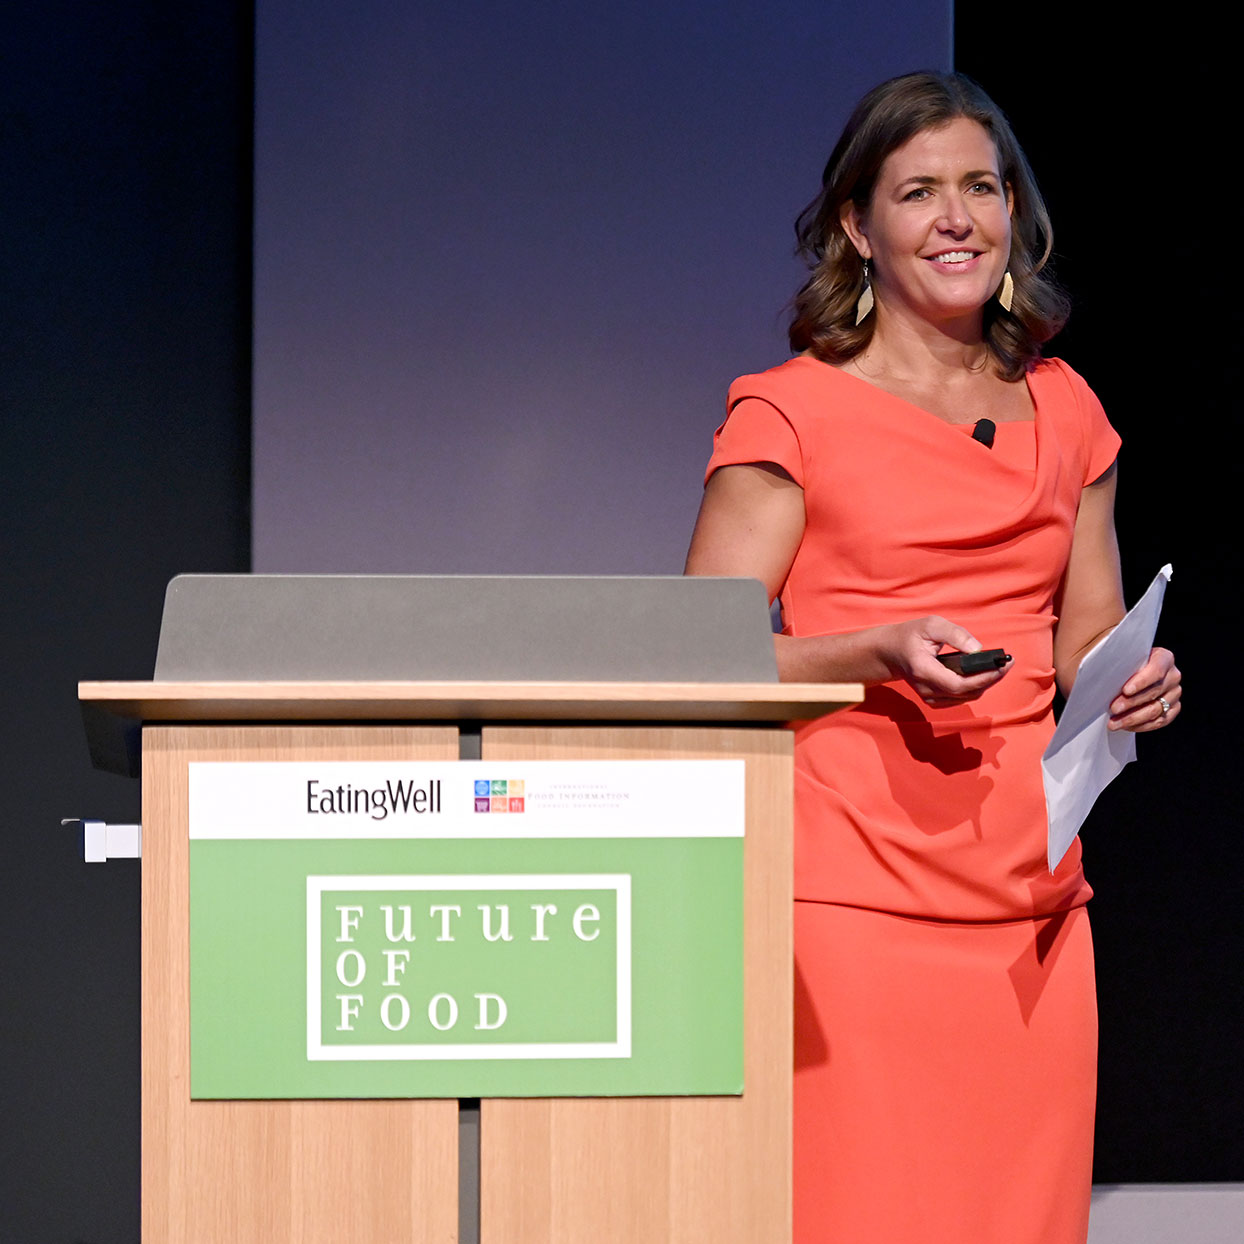 Personalized Diets, Next Gen Smart Ovens and Other Innovations from EatingWell's Future of Food Summit